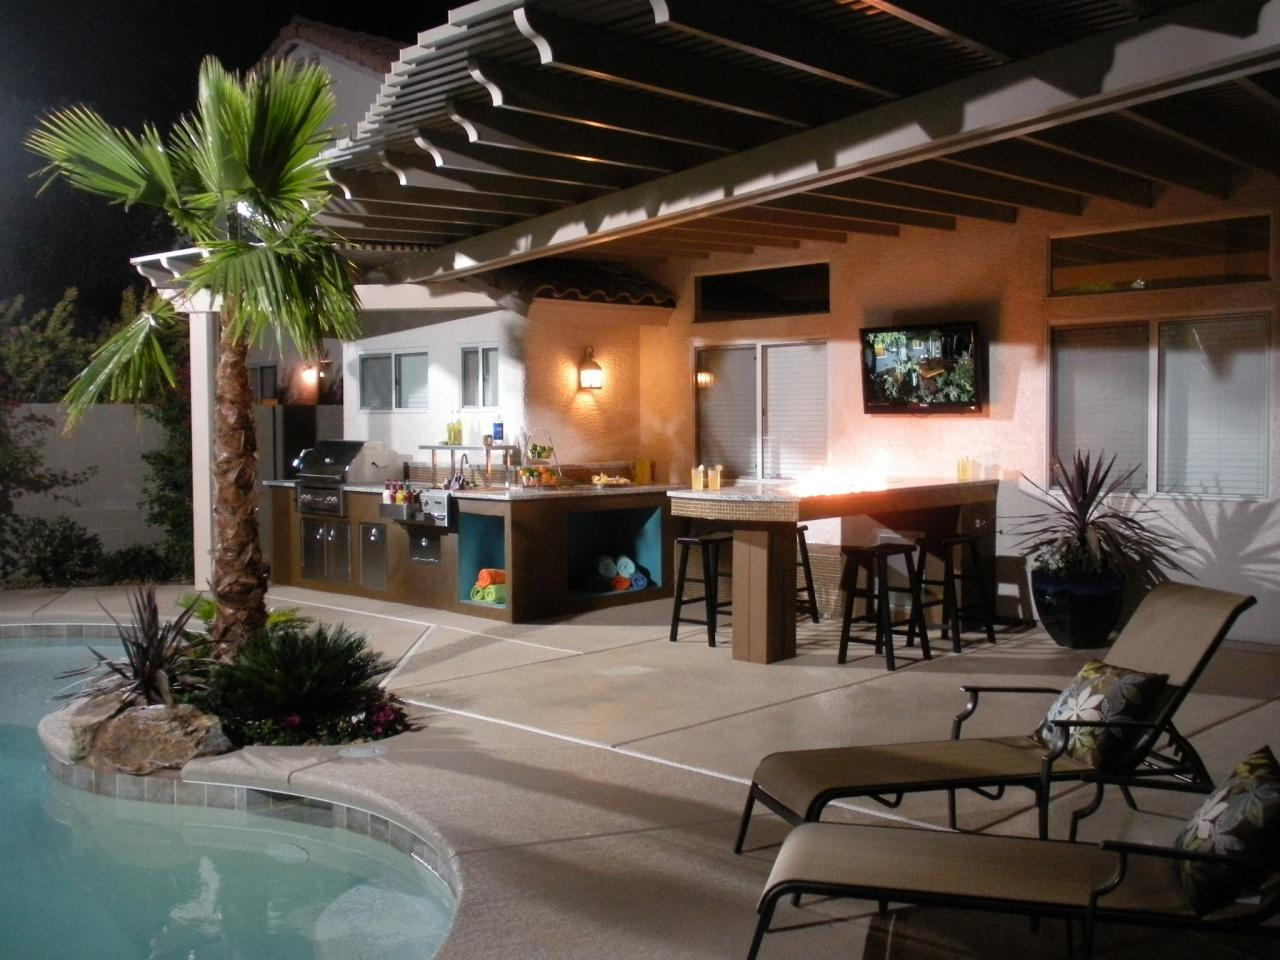 Outdoor Kitchen Ideas That Extend Your Living Space